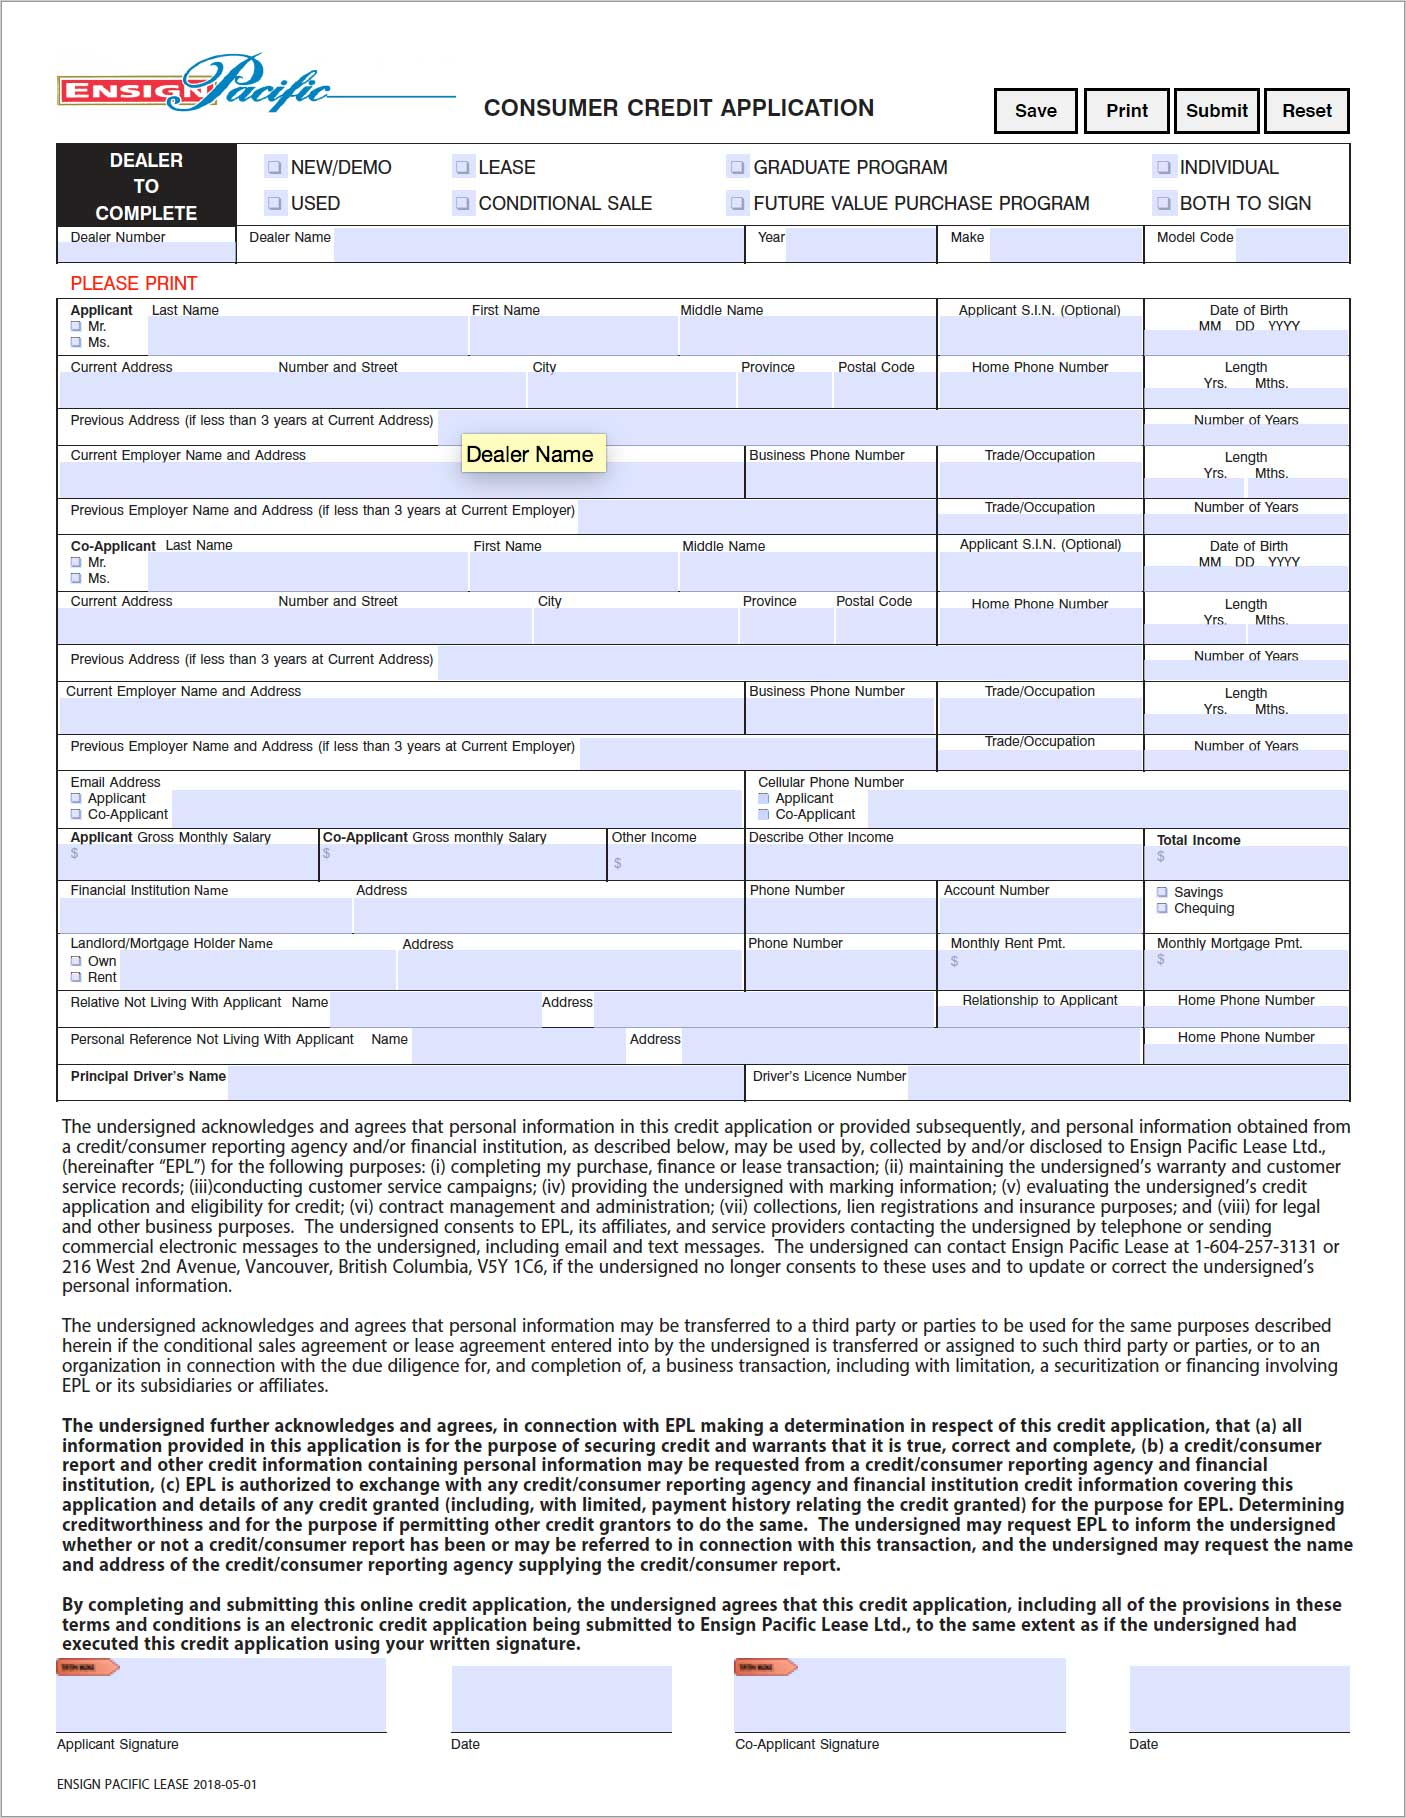 Ensign-Pacific-Lease-Consumer-Credit-Application Finance